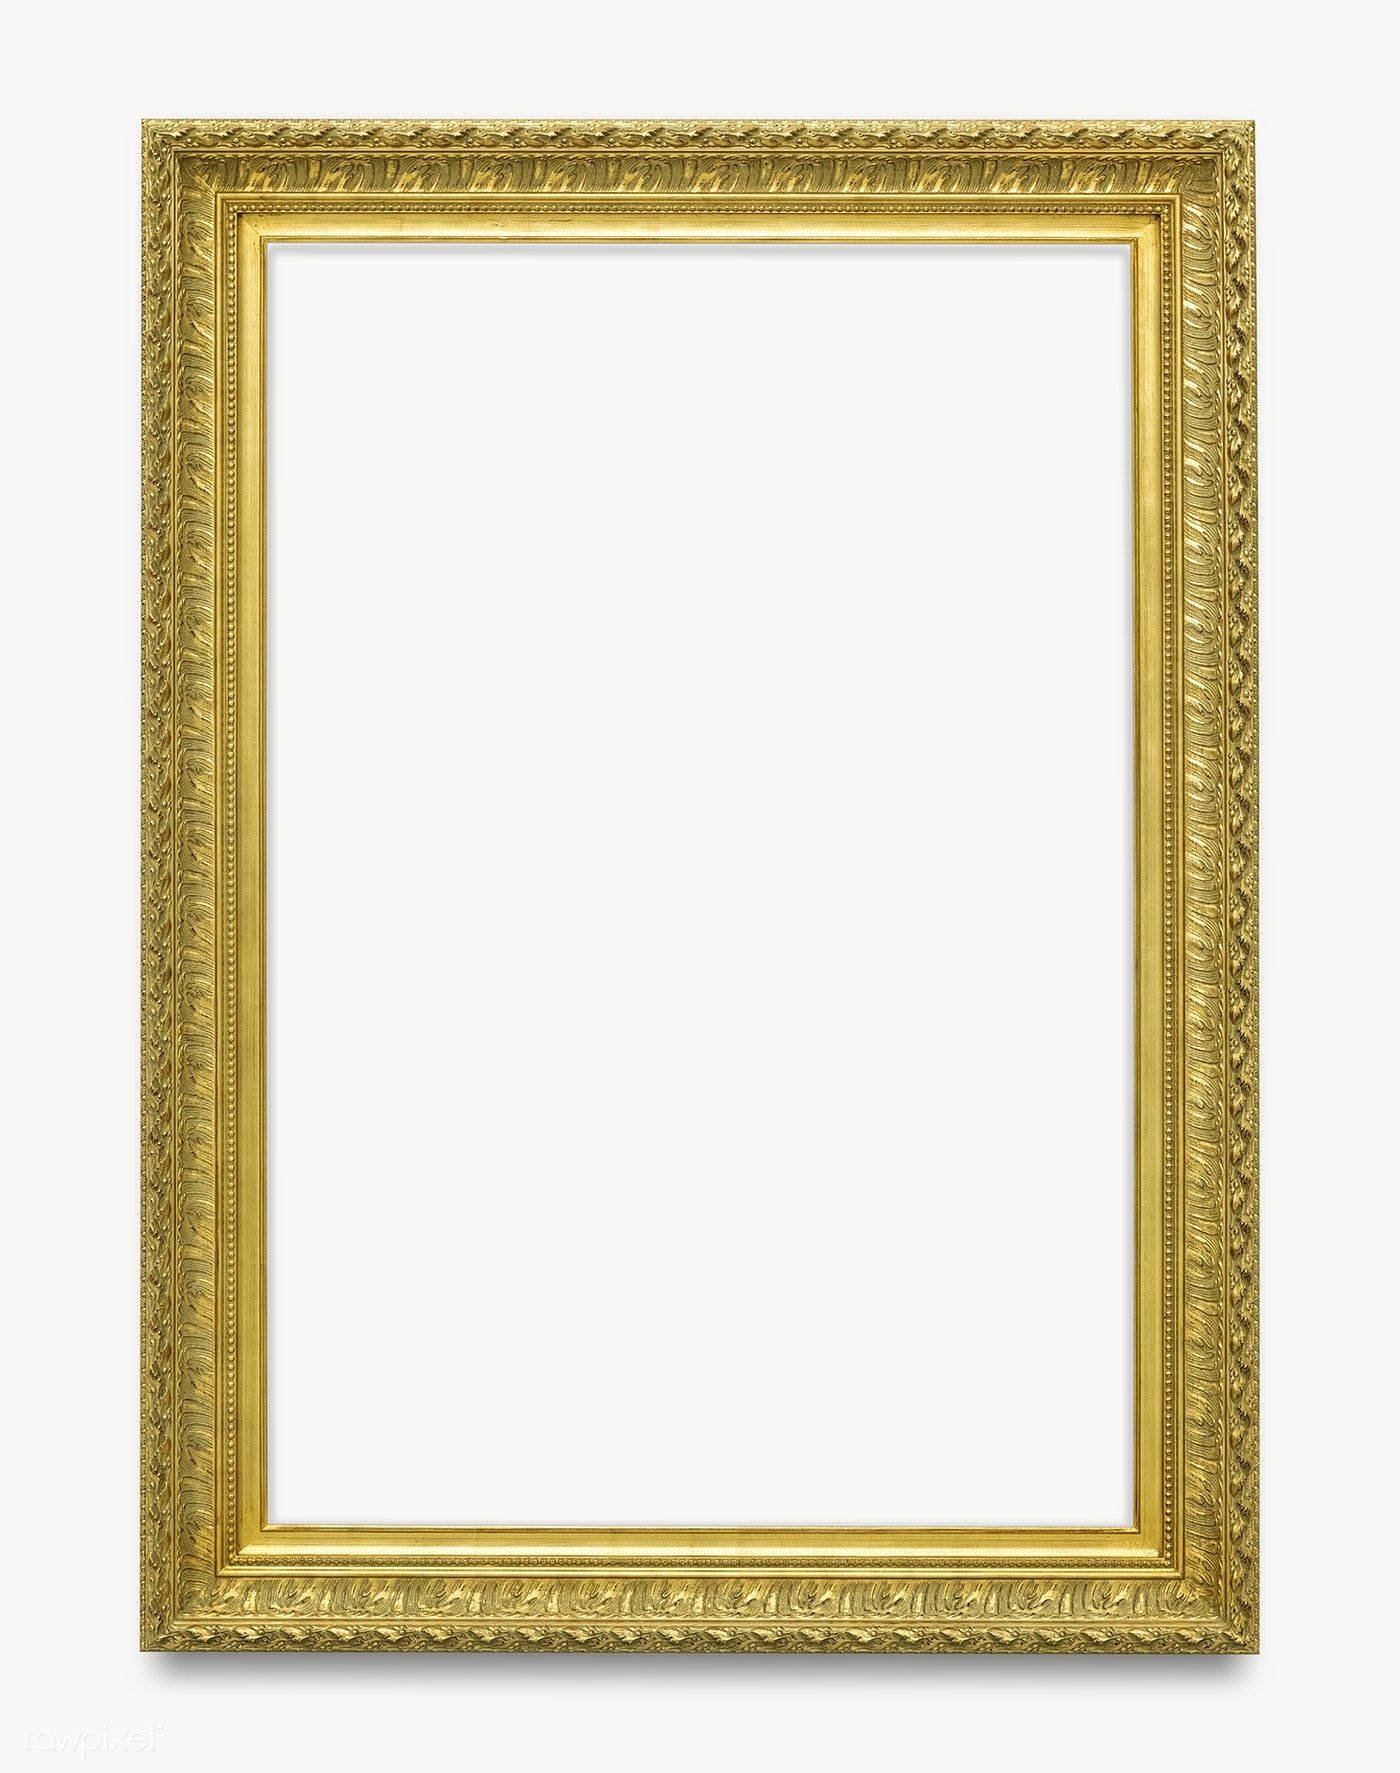 Download Premium Png Of Gold Picture Frame Transparent Png 1230665 Gold Picture Frames Picture Frames Pink Picture Frames